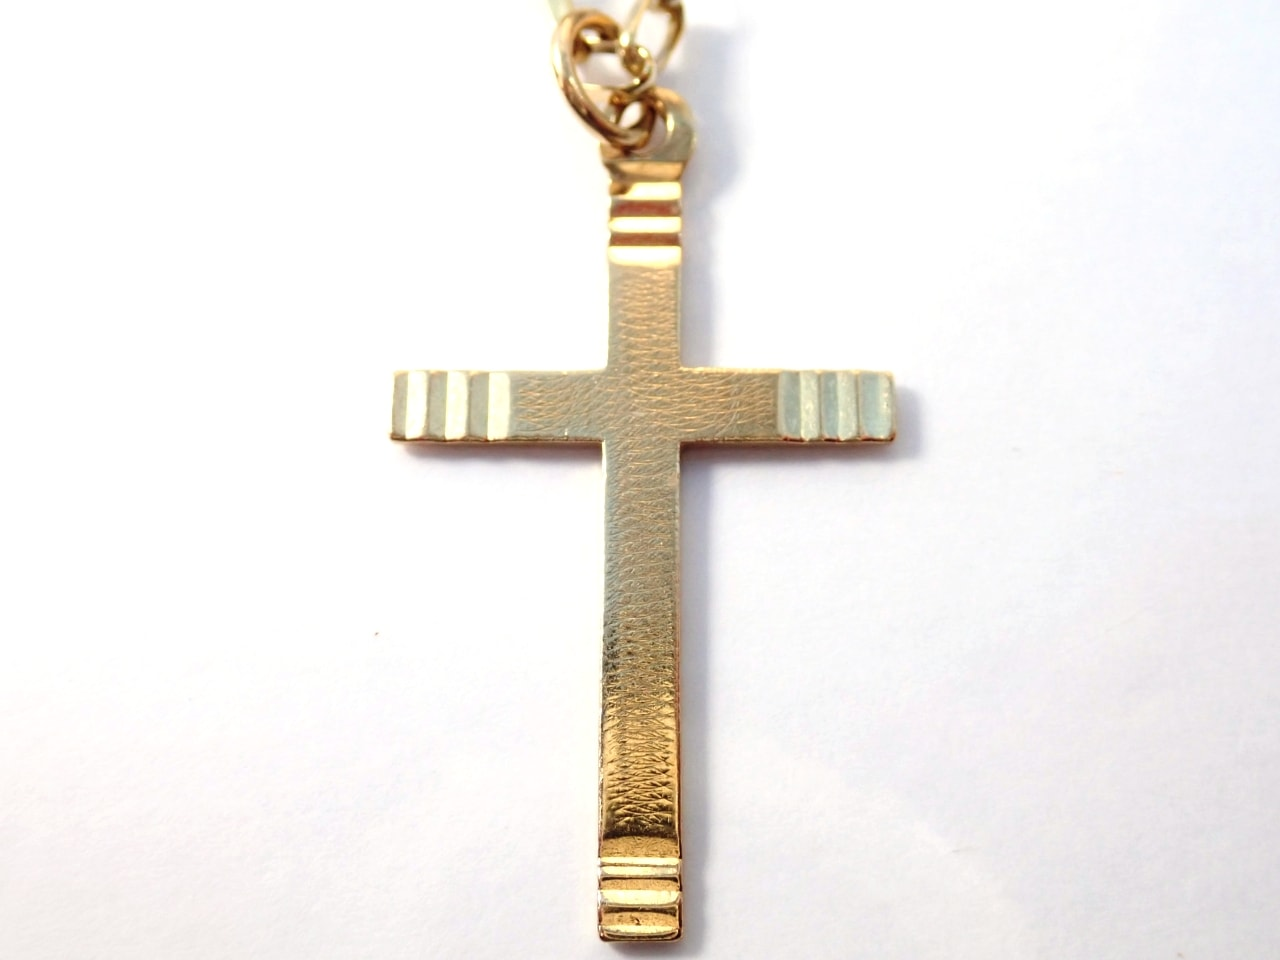 9K Gold Cross Crucifix Pendant